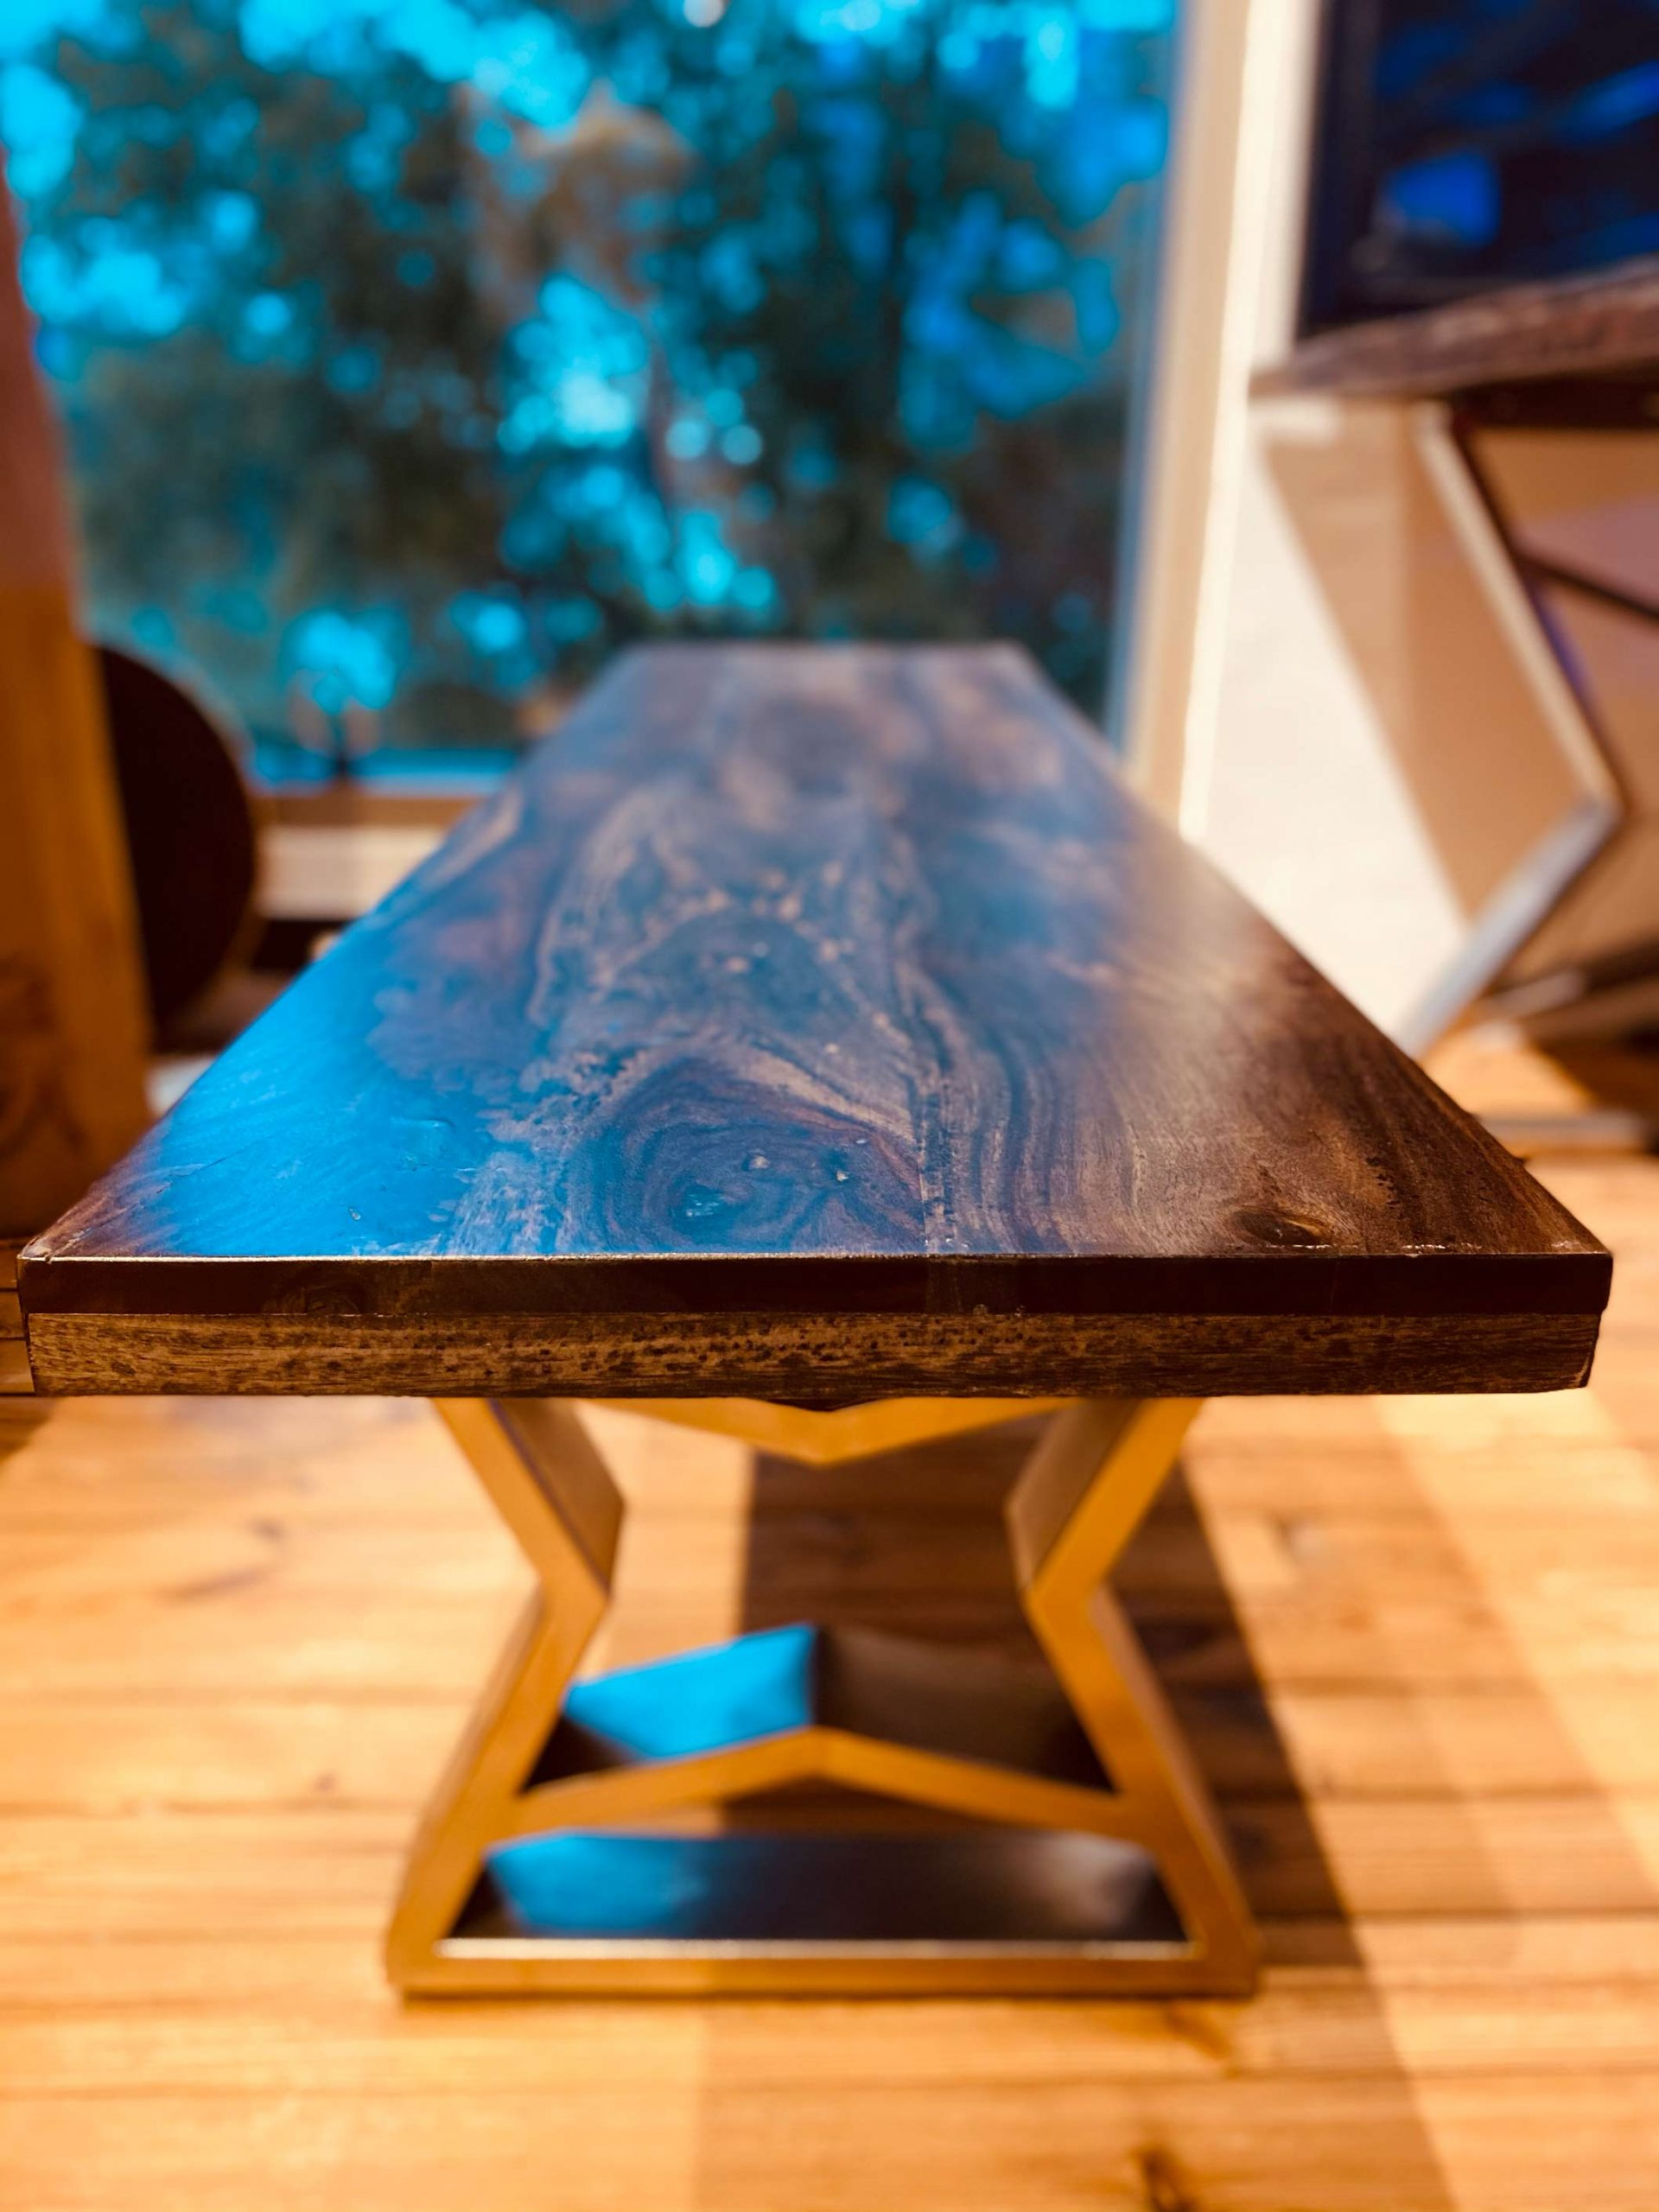 Suar Wood Table Side View